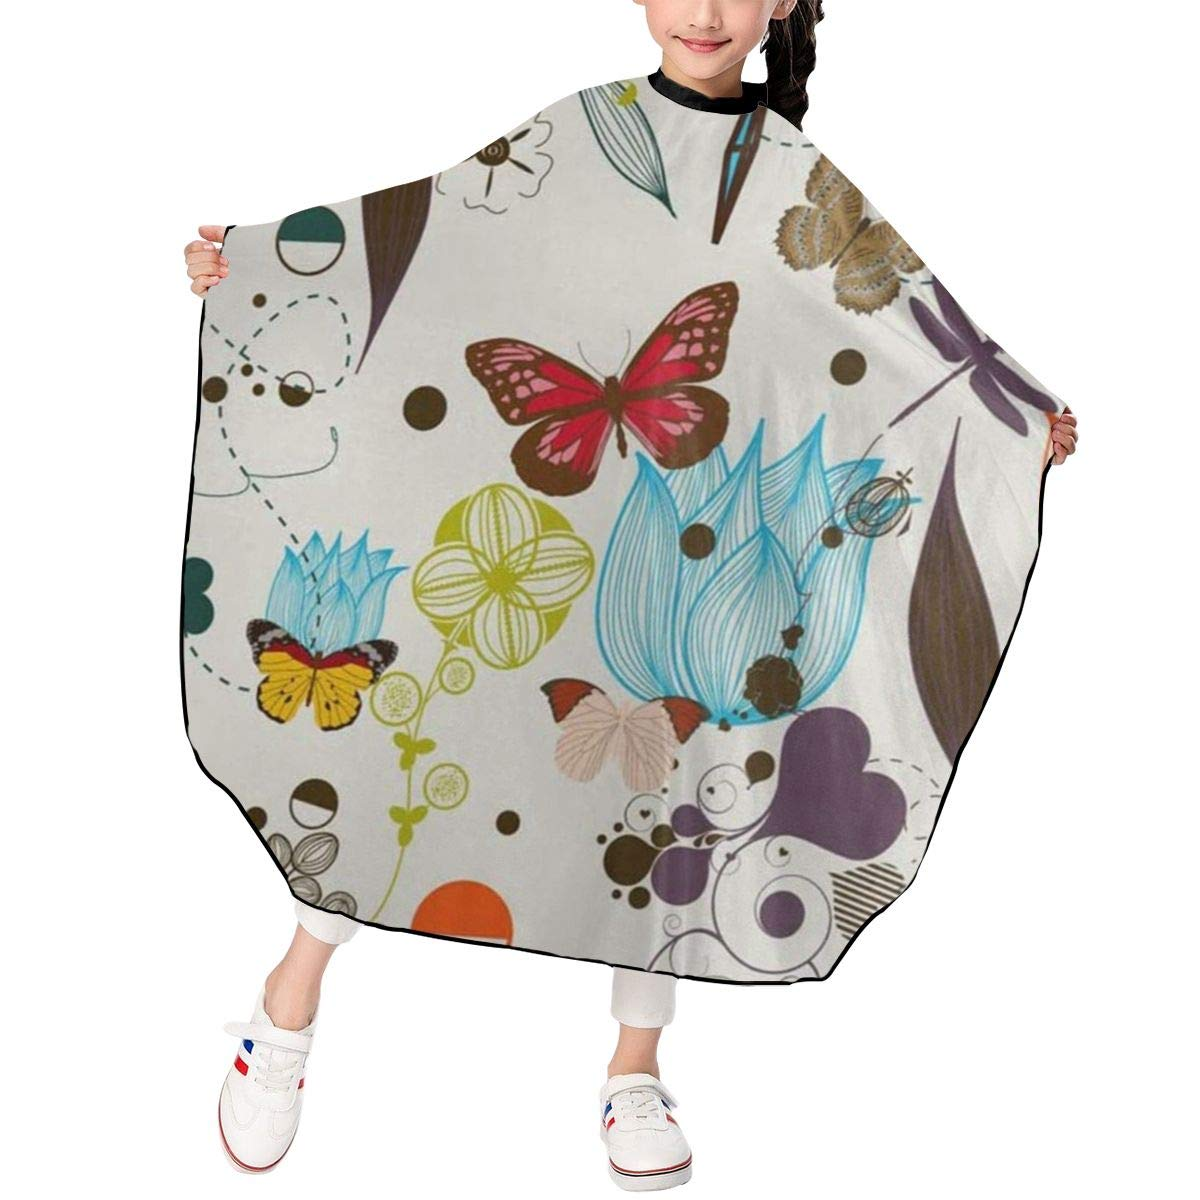 Blooming Flowers And Butterfly Capes For Hair Stylist Kids Waterproof Professional Barber Haircut Hair Cutting Salon Cape Apron Shawl For Boys Girls Child